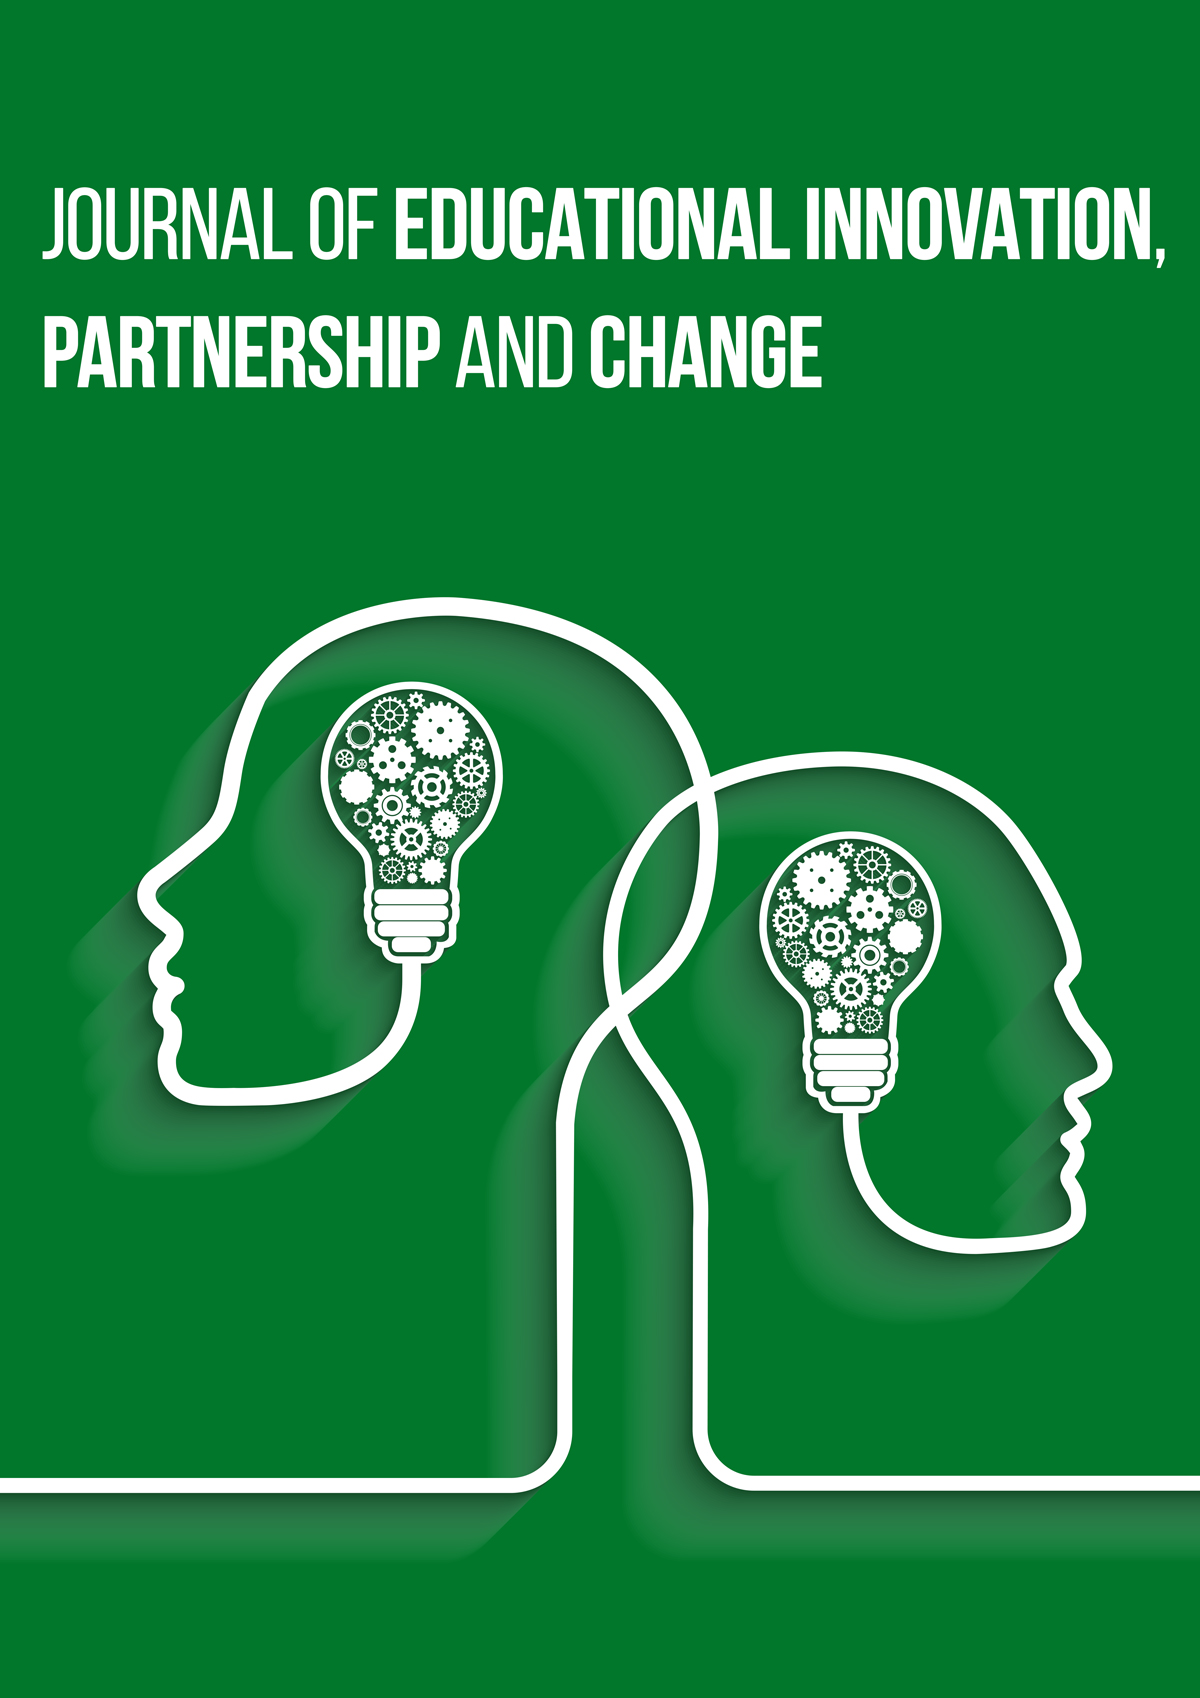 Journal of Educational Innovation, Partnership and Change: Change Agent's Network